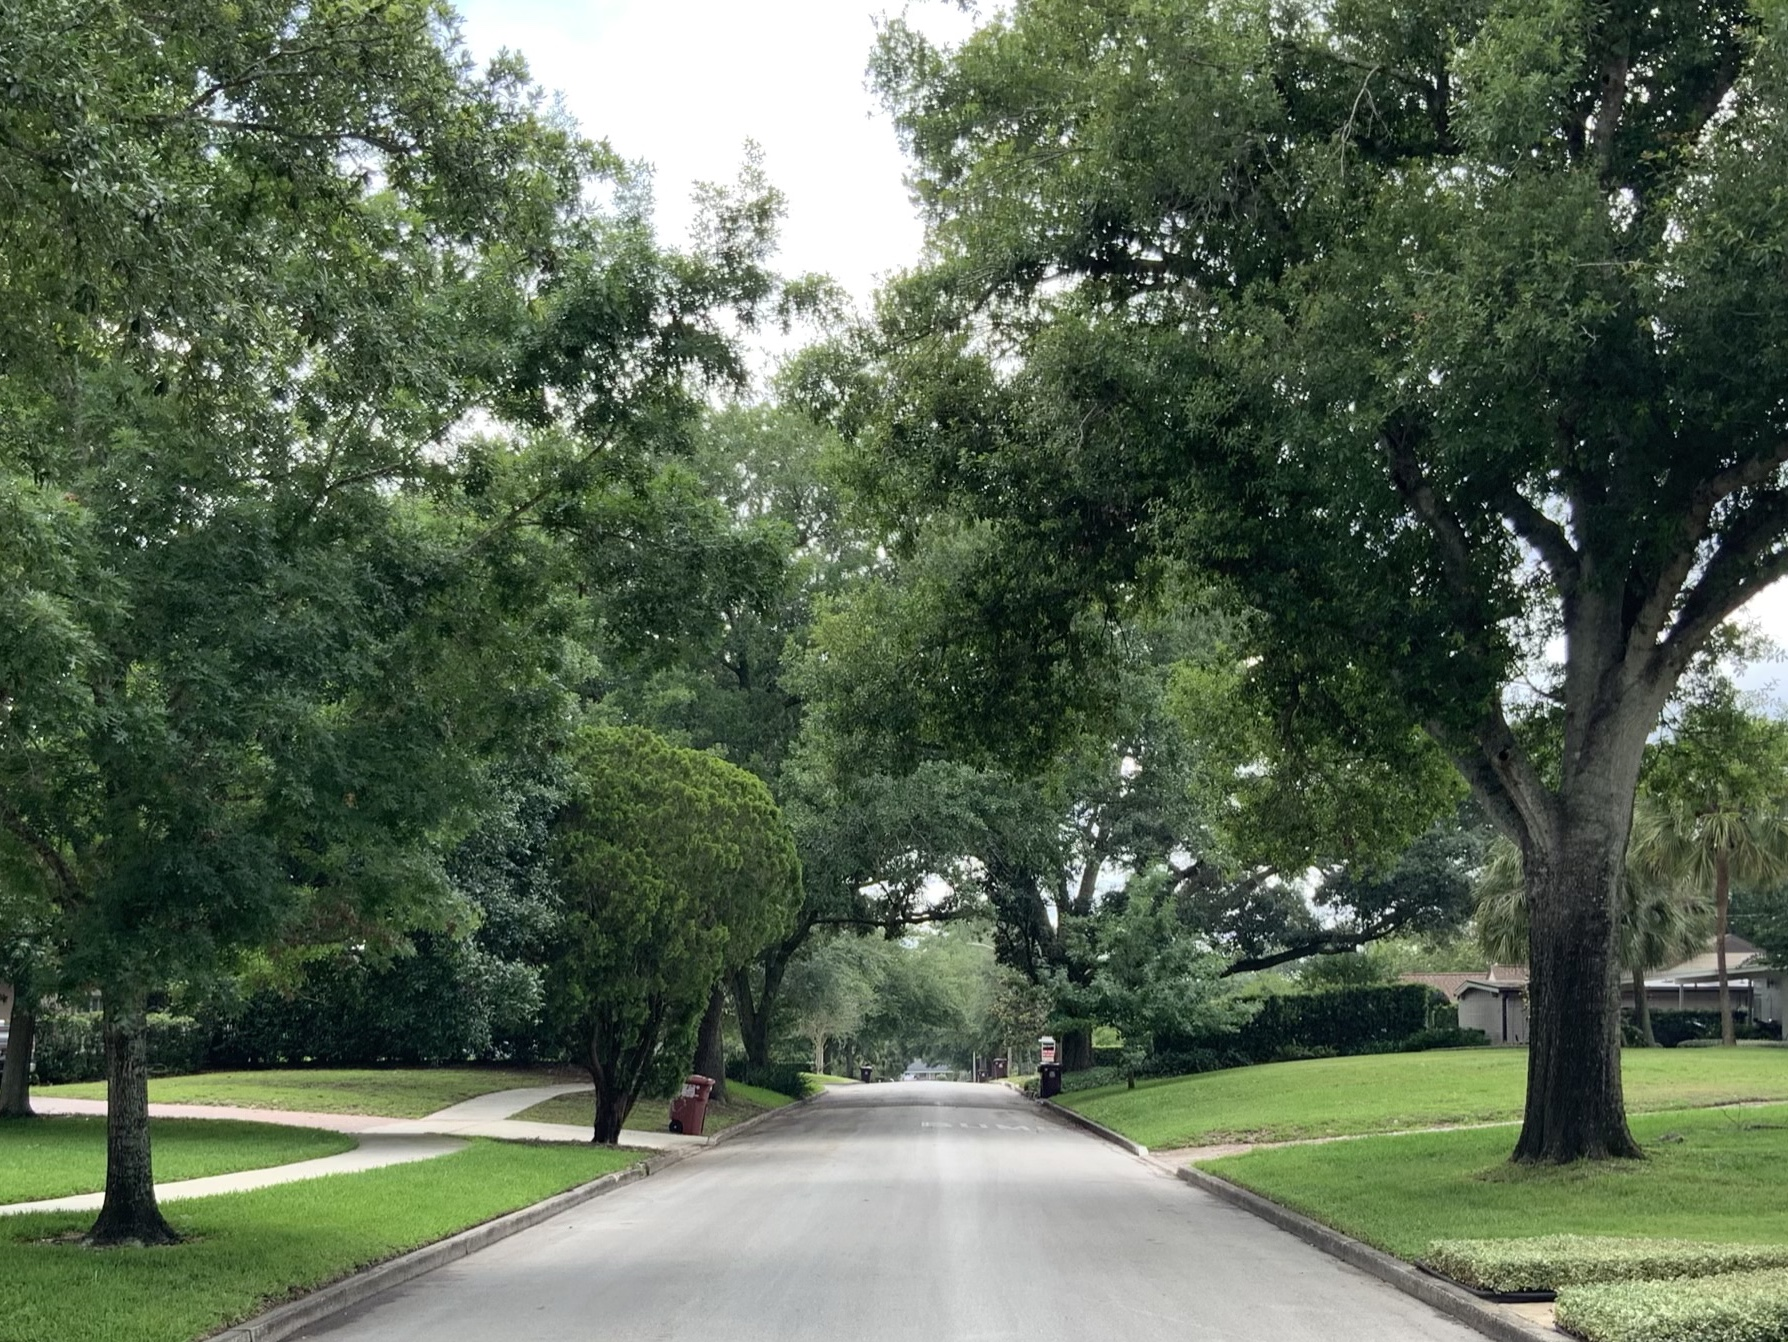 What Does a Tree Lined Street, Drive or Avenue Mean to You?